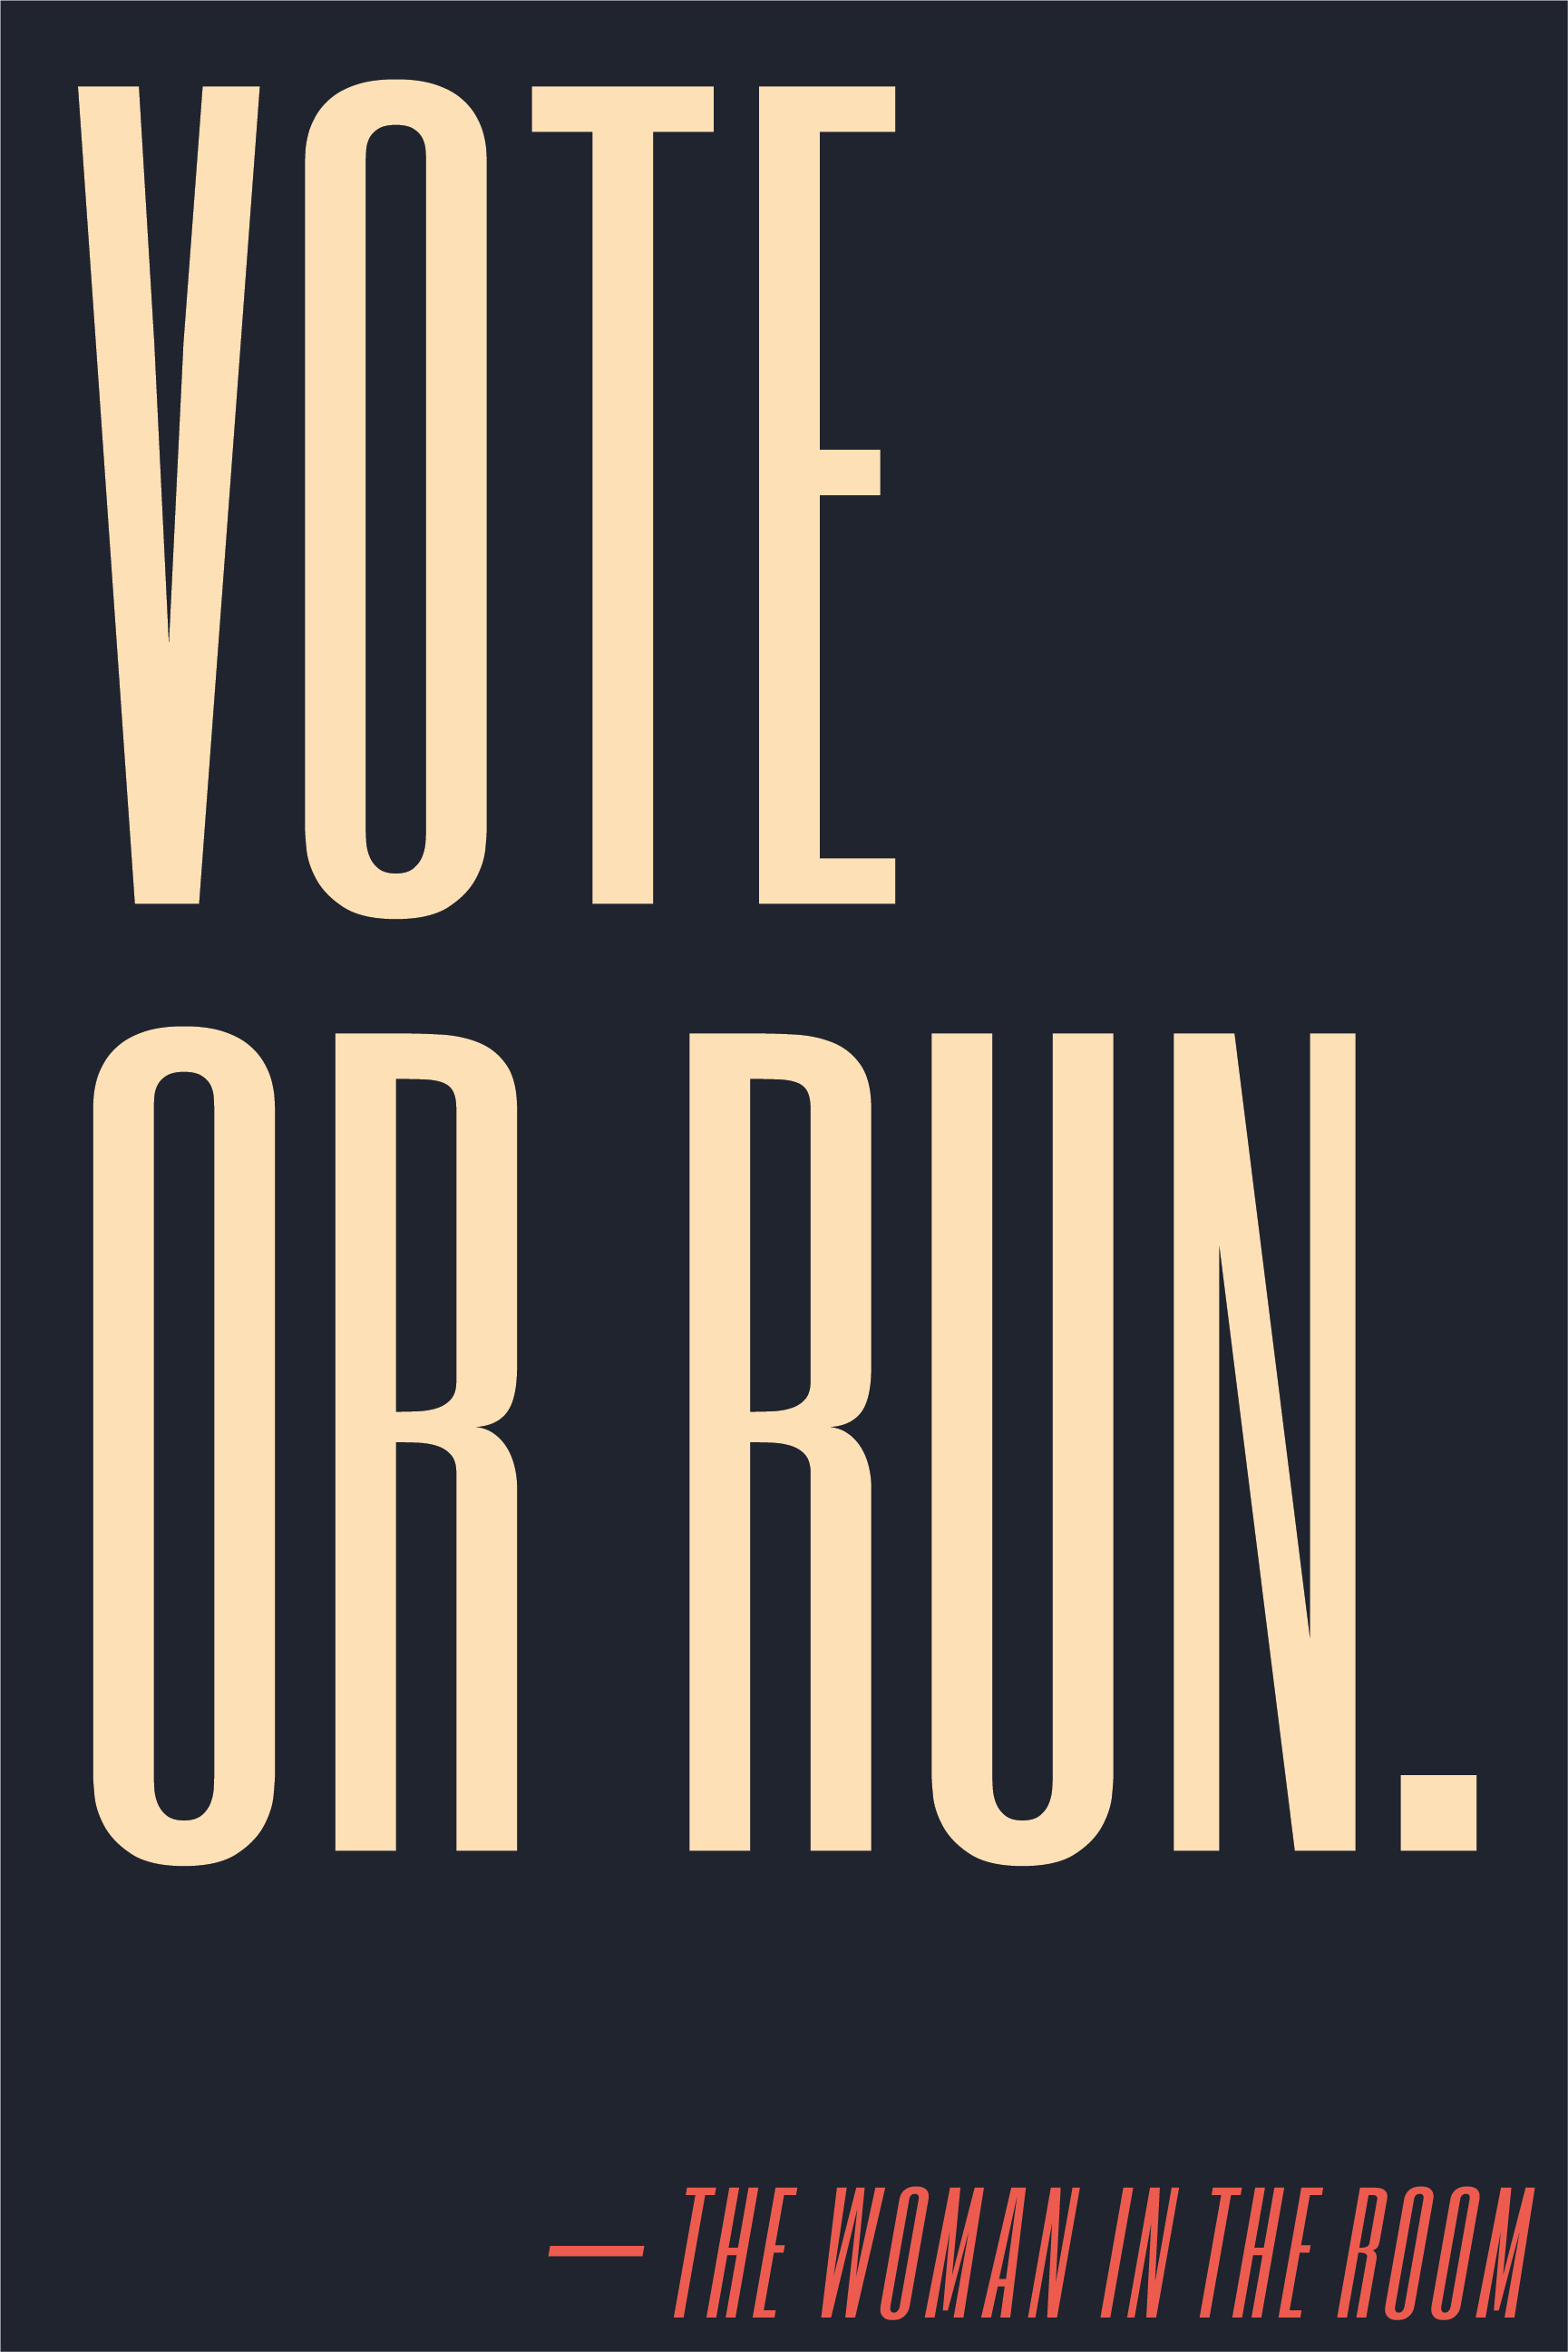 Vote or run.